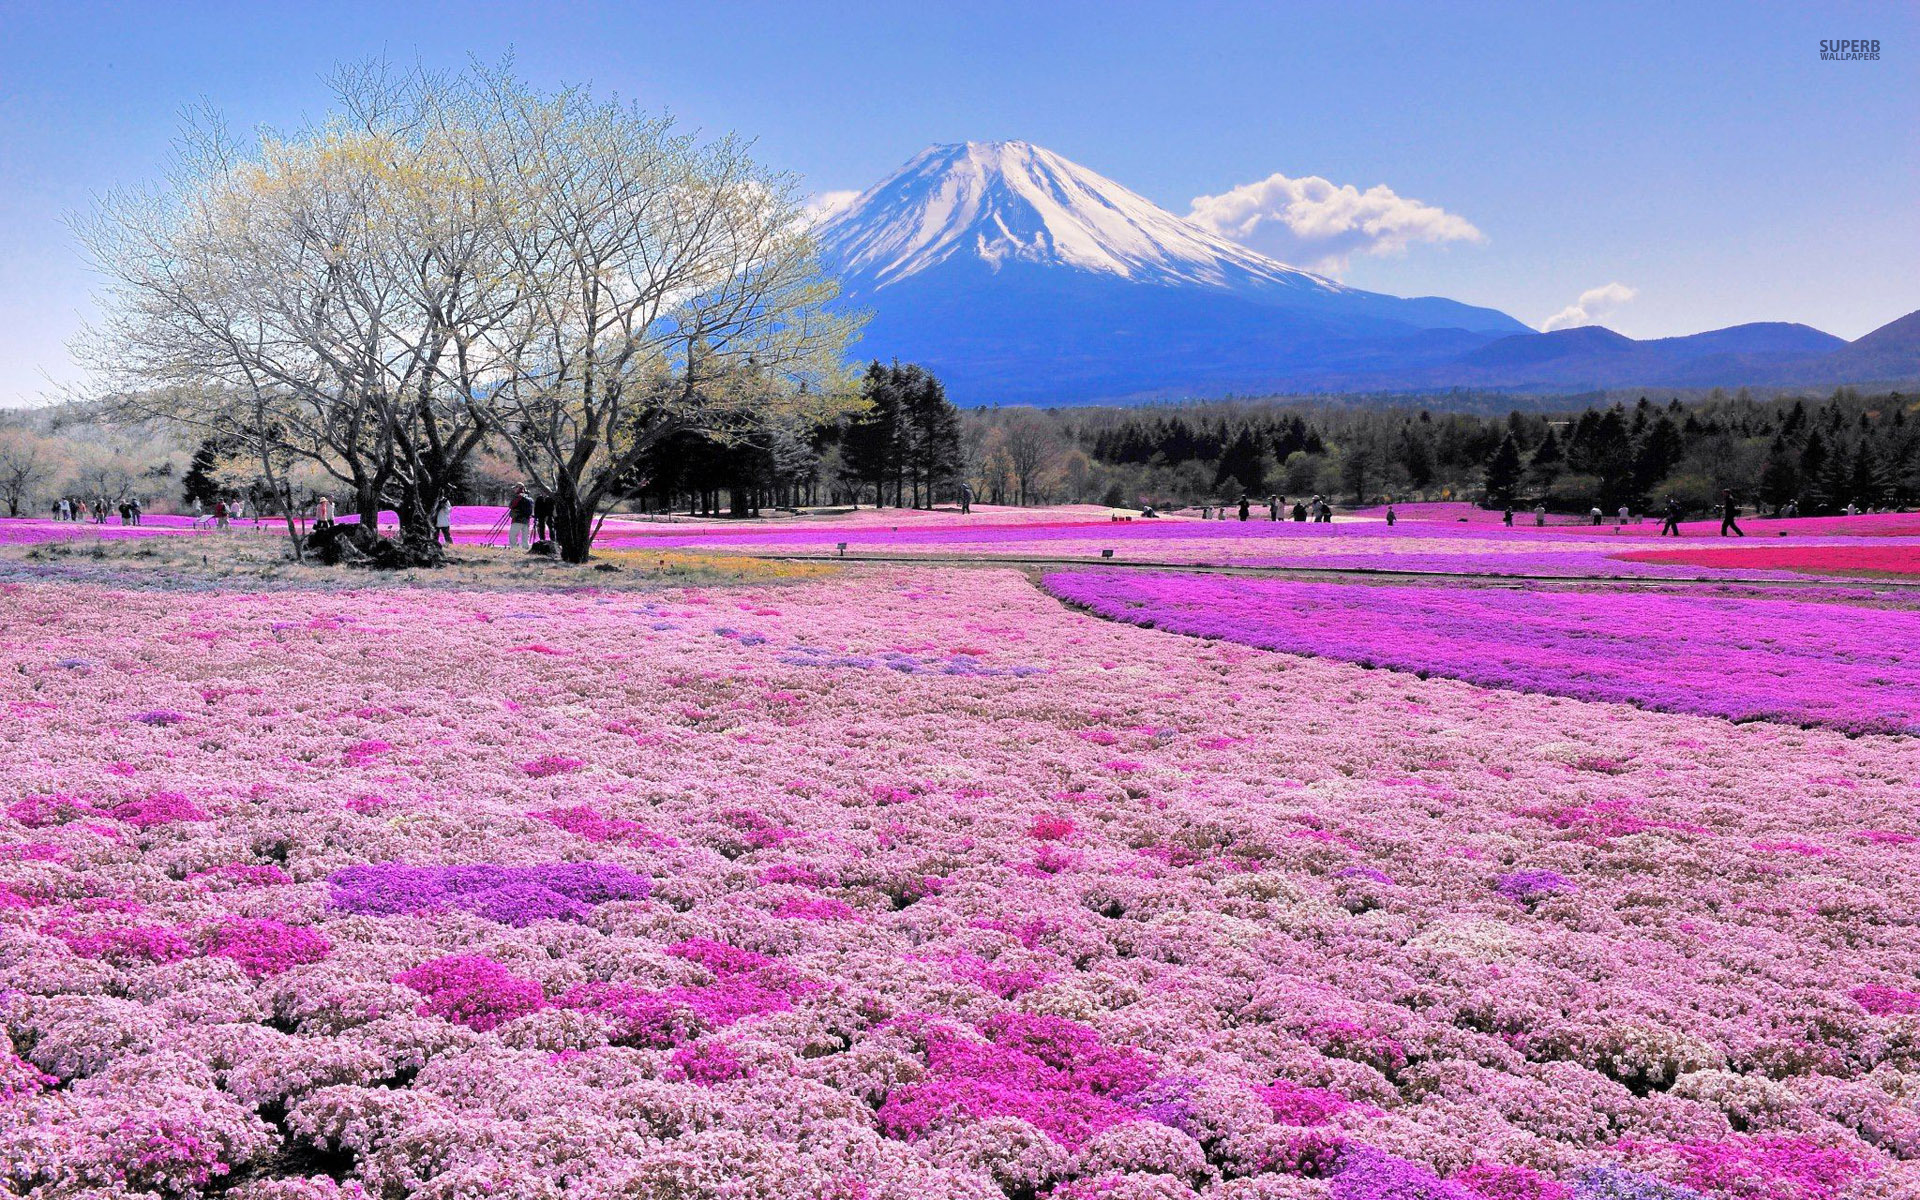 A Field Of Flowers And Mt Fuji